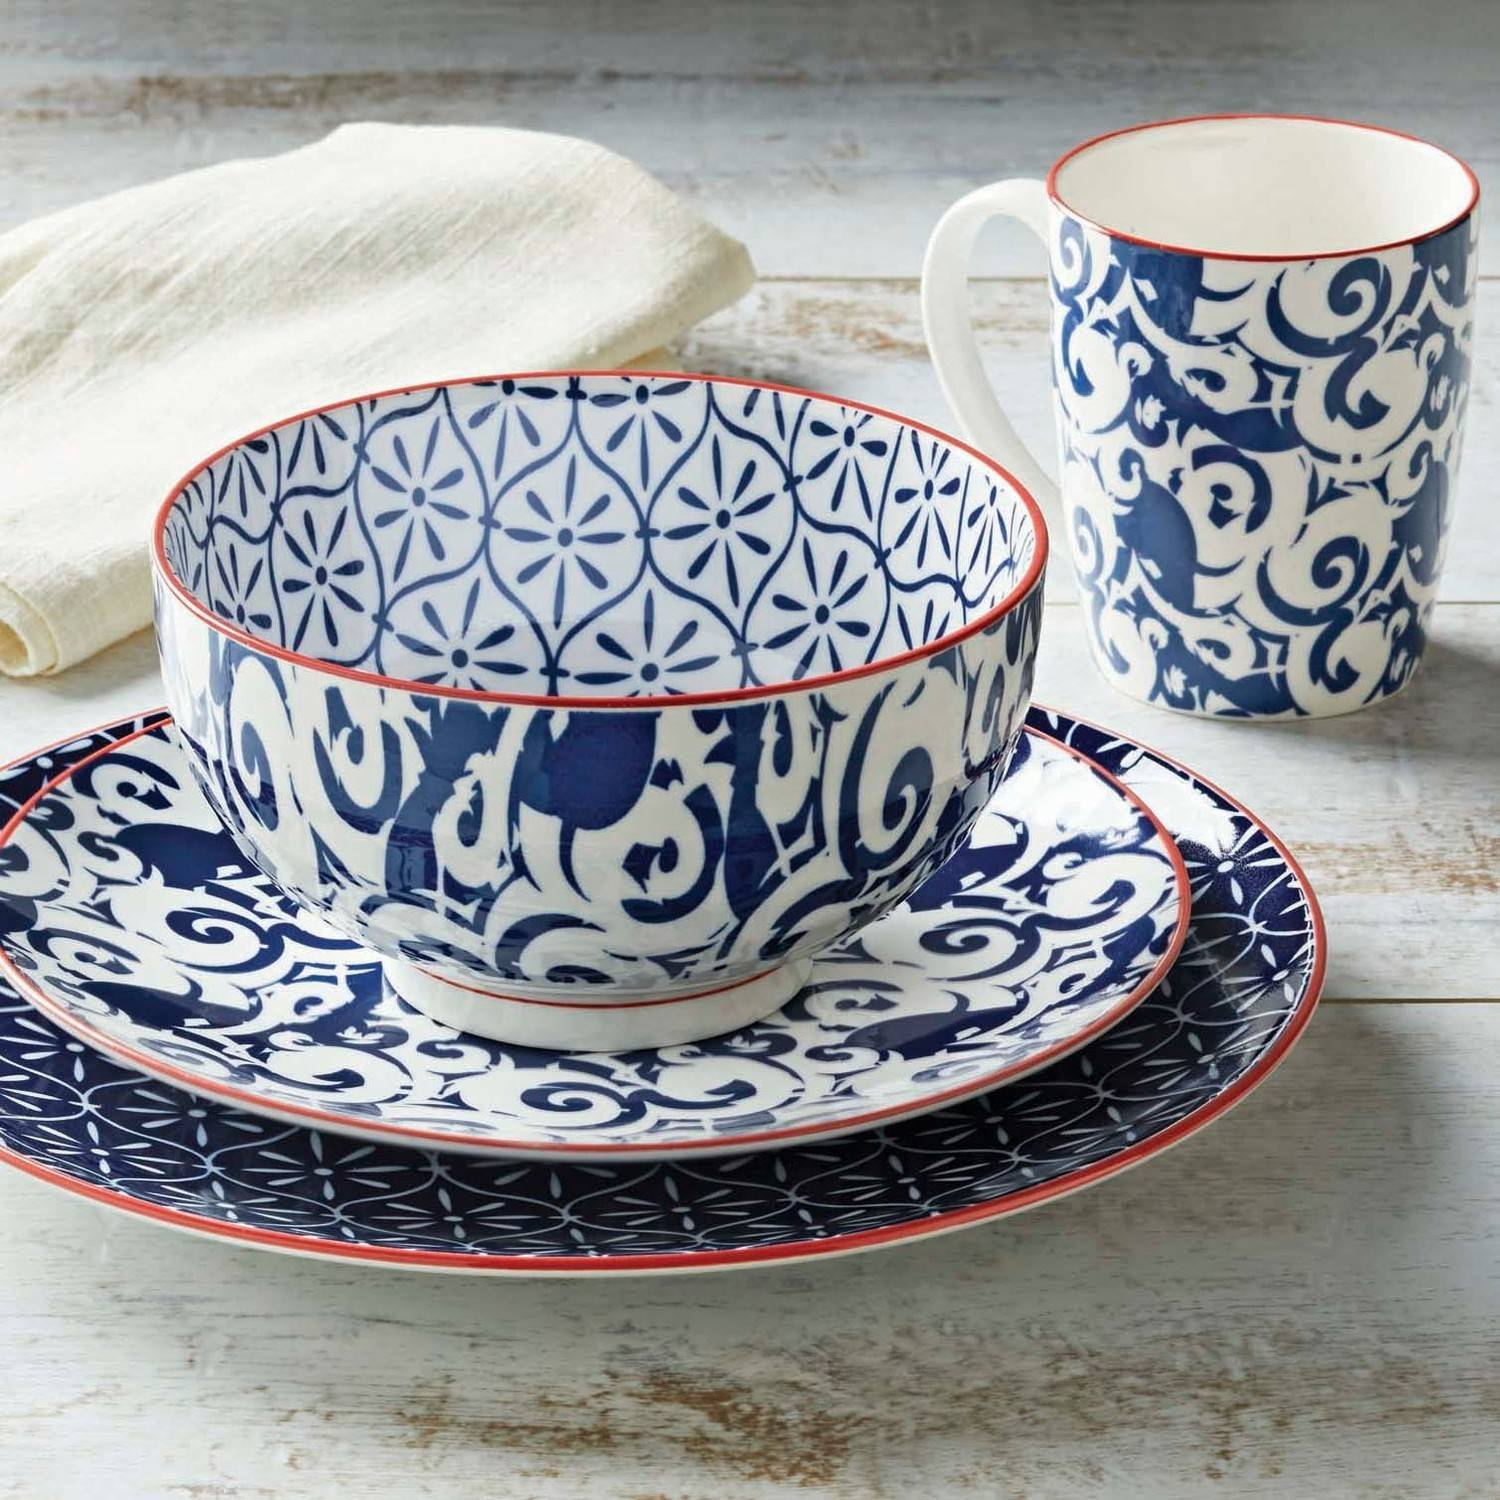 Better Homes and Gardens Piers Blue Mix and Match 16 Piece Dinnerware Set & Better Homes and Gardens Piers Blue Mix and Match 16 Piece ...